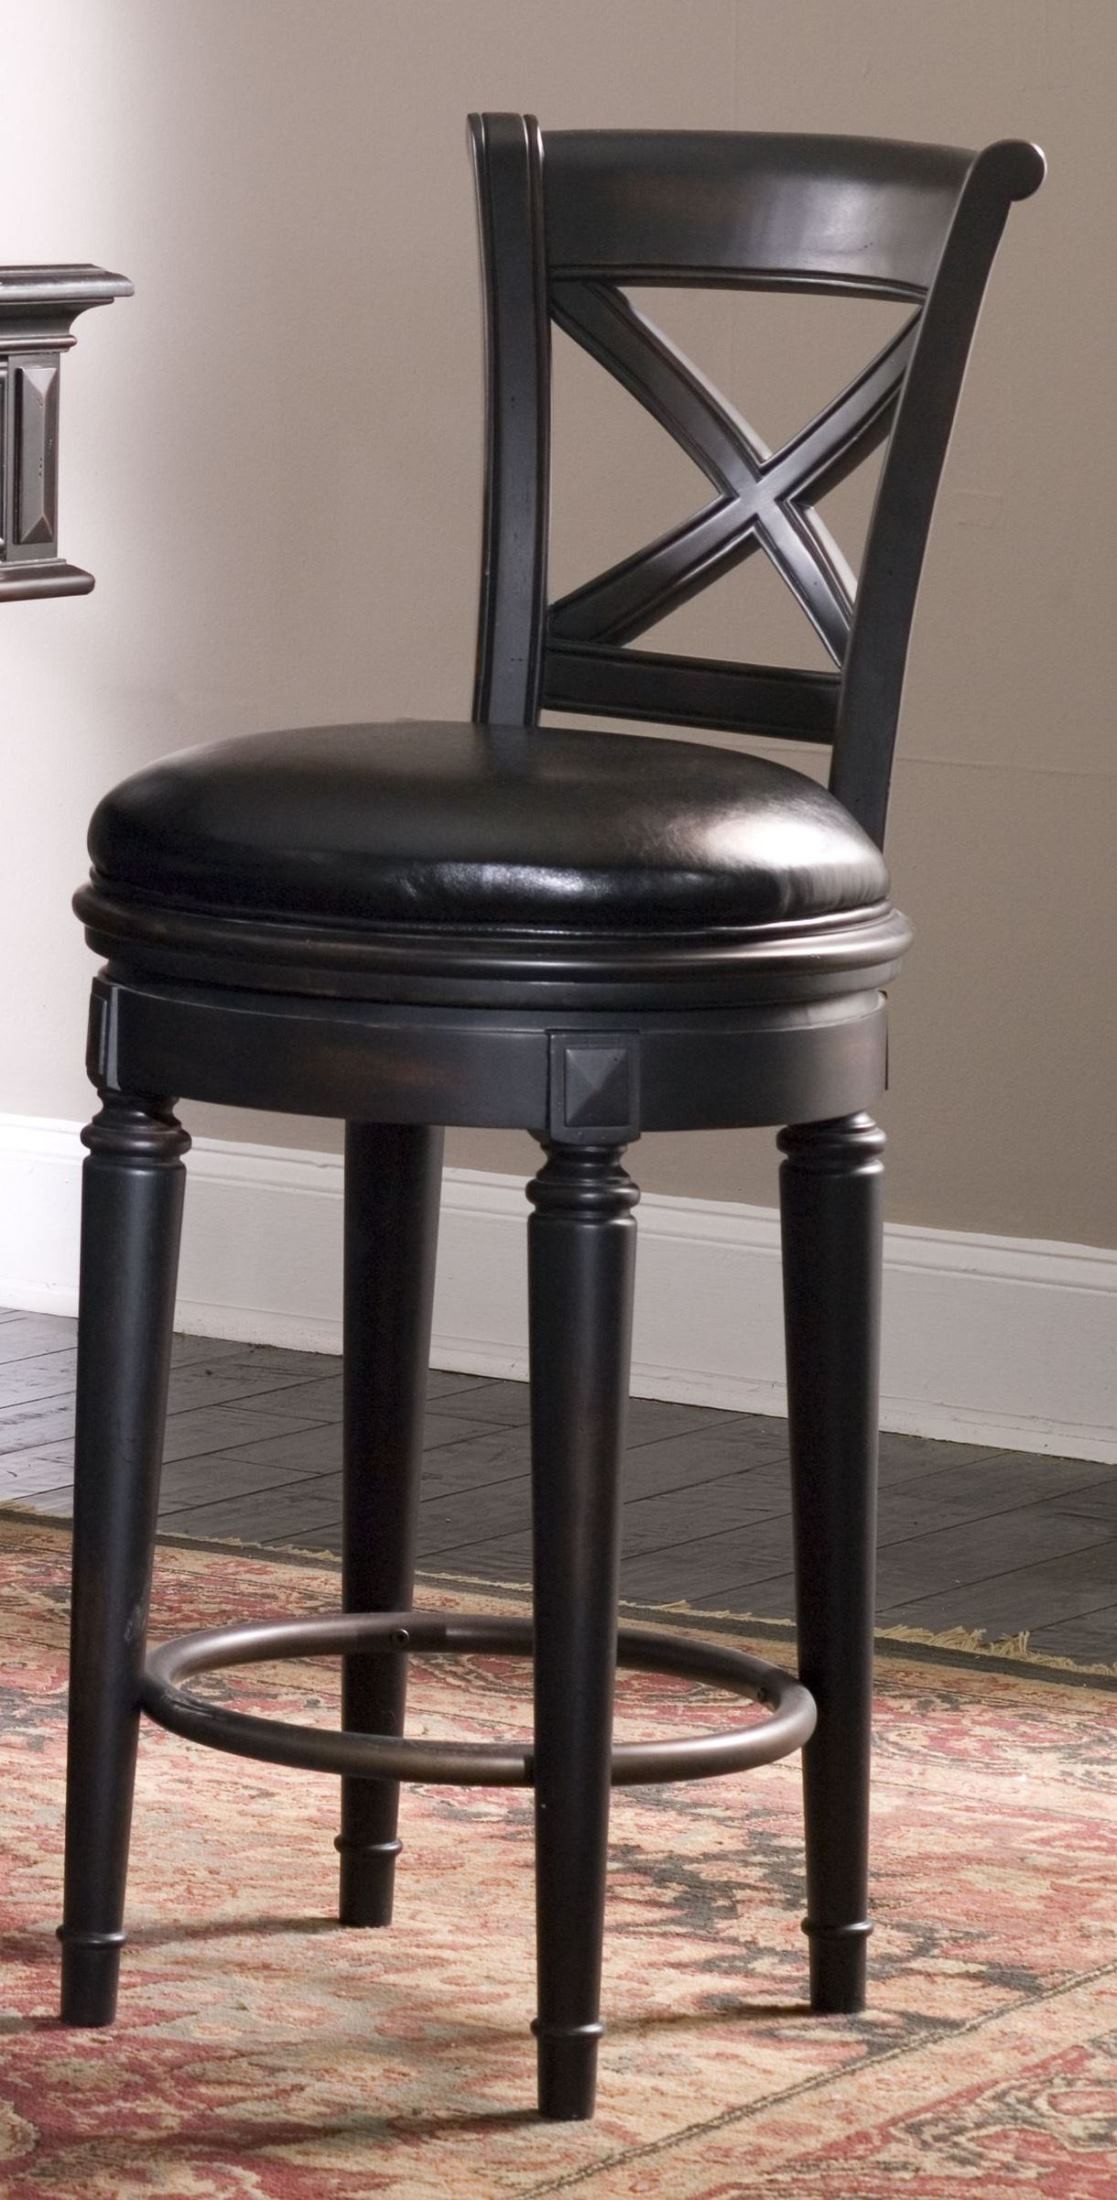 Brookfield bar stool from pulaski 993501 coleman furniture - Average height of bar stools ...